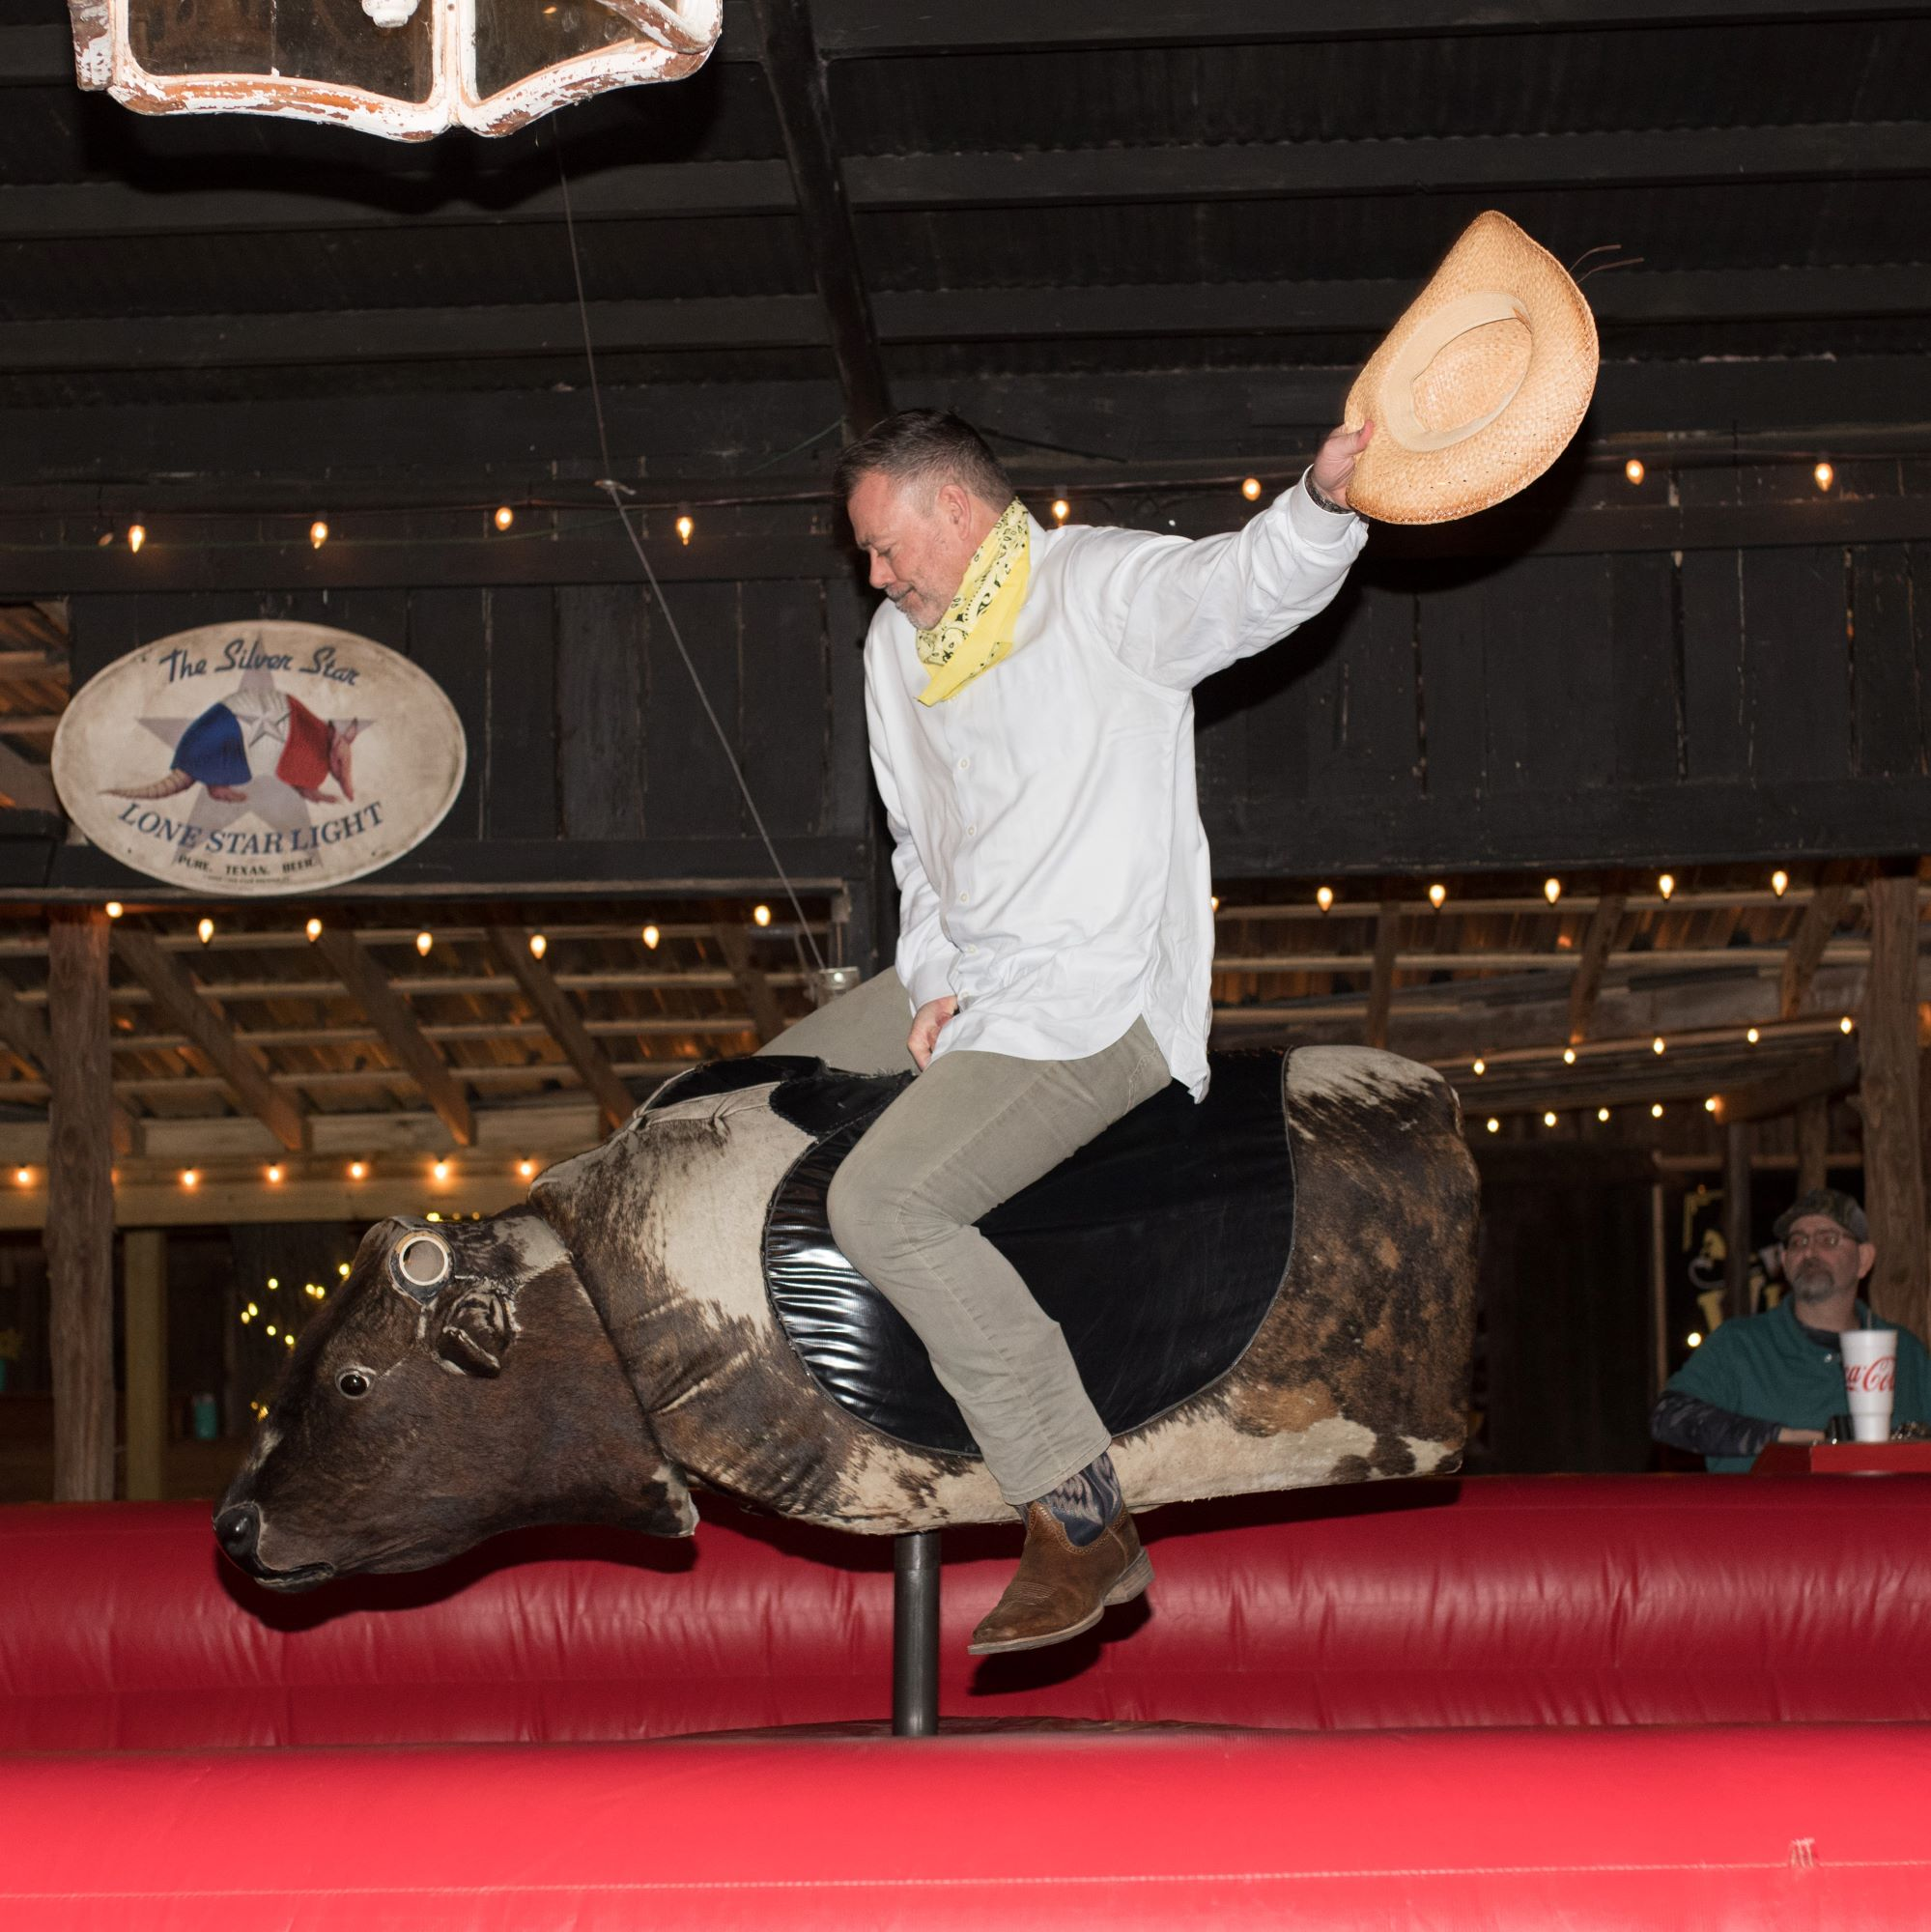 San Antonio Team Building Retreat Corporate Event Venue Mechanical Bull Ride